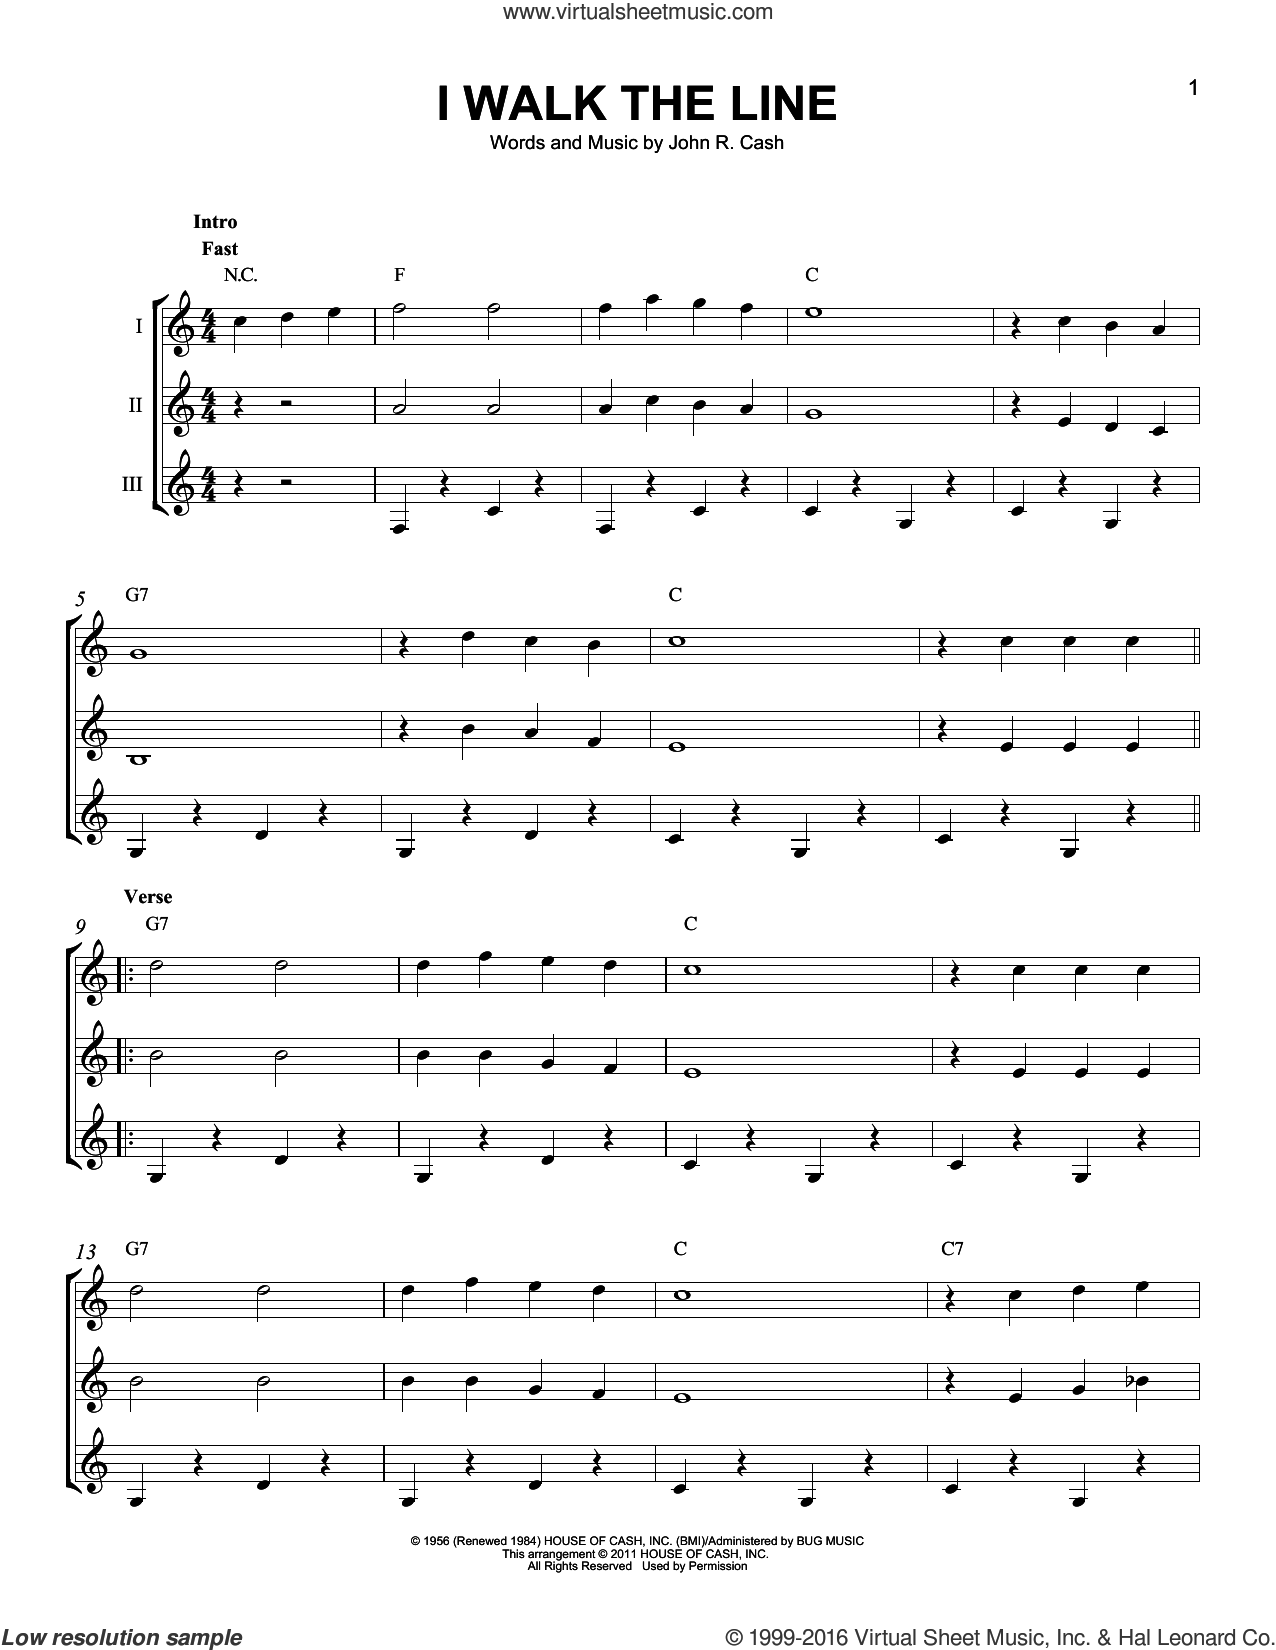 I Walk The Line sheet music for guitar ensemble by Johnny Cash. Score Image Preview.